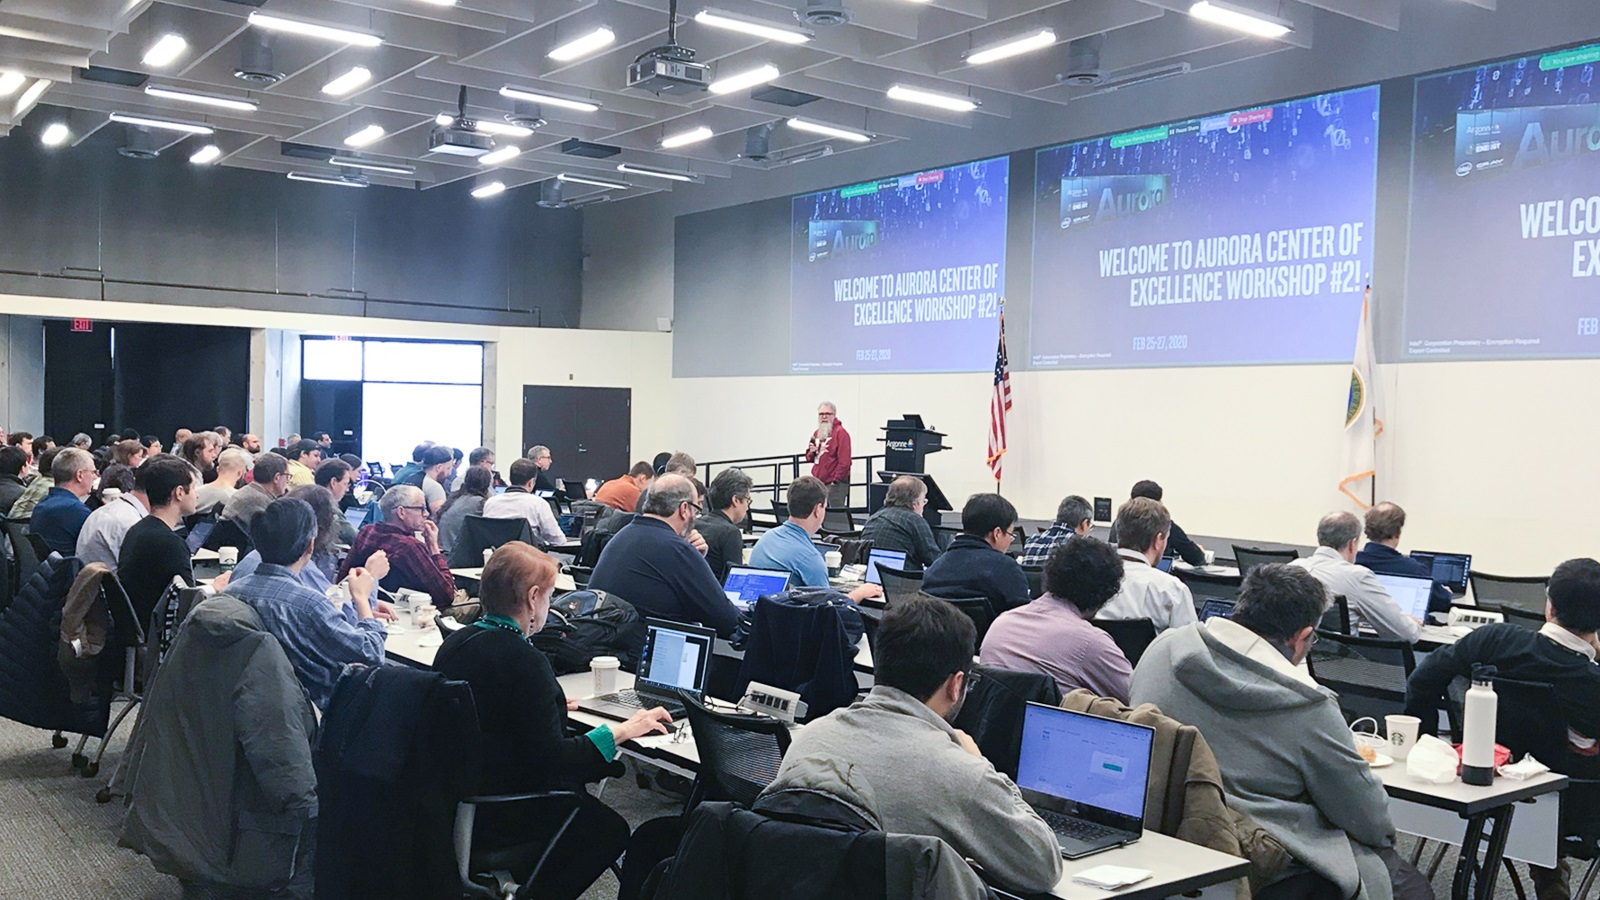 ALCF Director Michael Papka welcomes researchers to a three-day Aurora workshop held at Argonne in February. (Image by Argonne National Laboratory.)